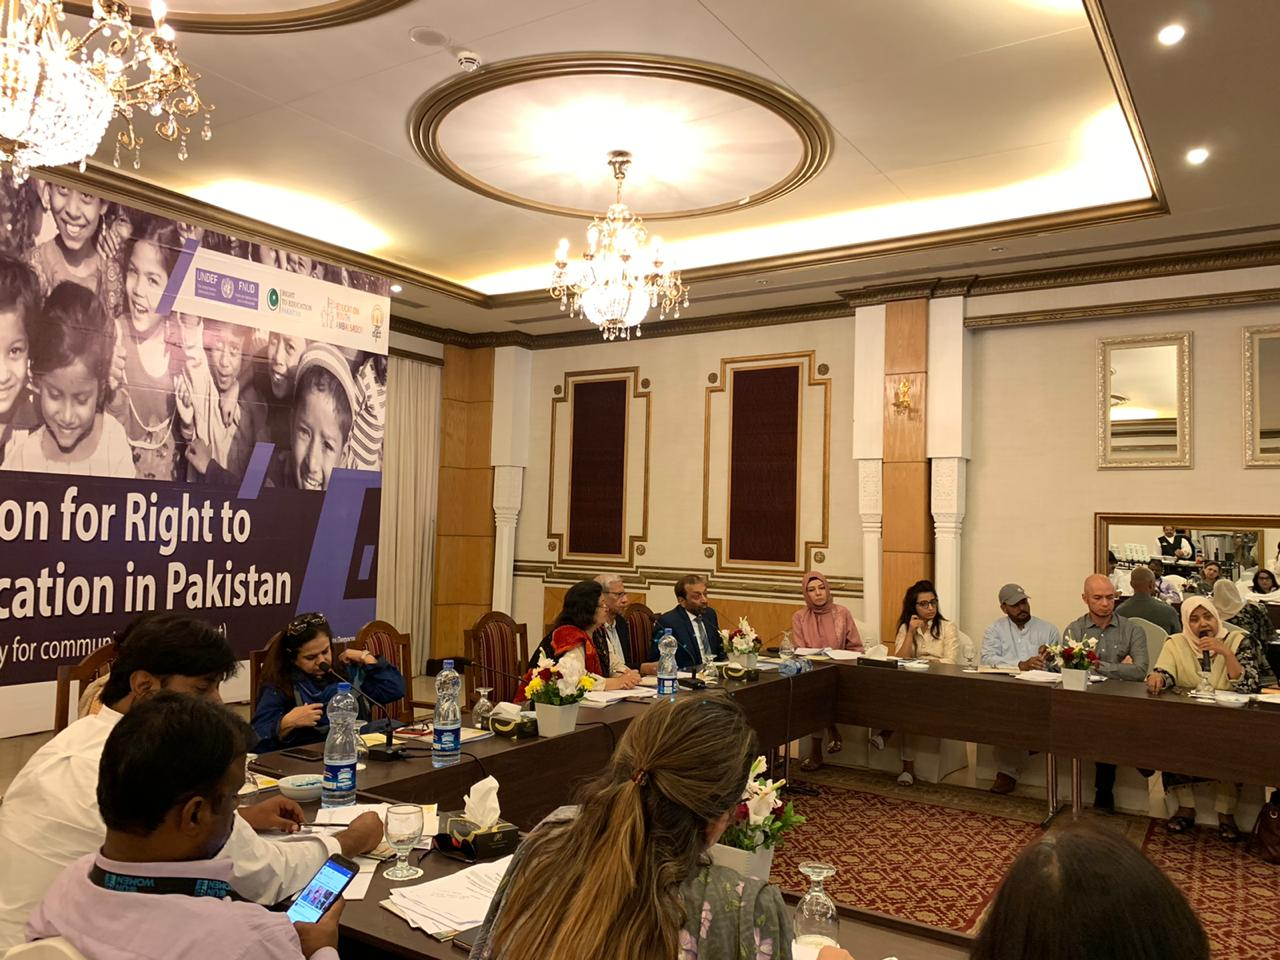 PLEDGES MADE FOR ACCELERATING ACTIONS TO IMPLEMENT RIGHT TO EDUCATION (RTE) 25-A LEGISLATION IN SINDH TO MEET TARGETS OF SDGS 2030 & SDG 4